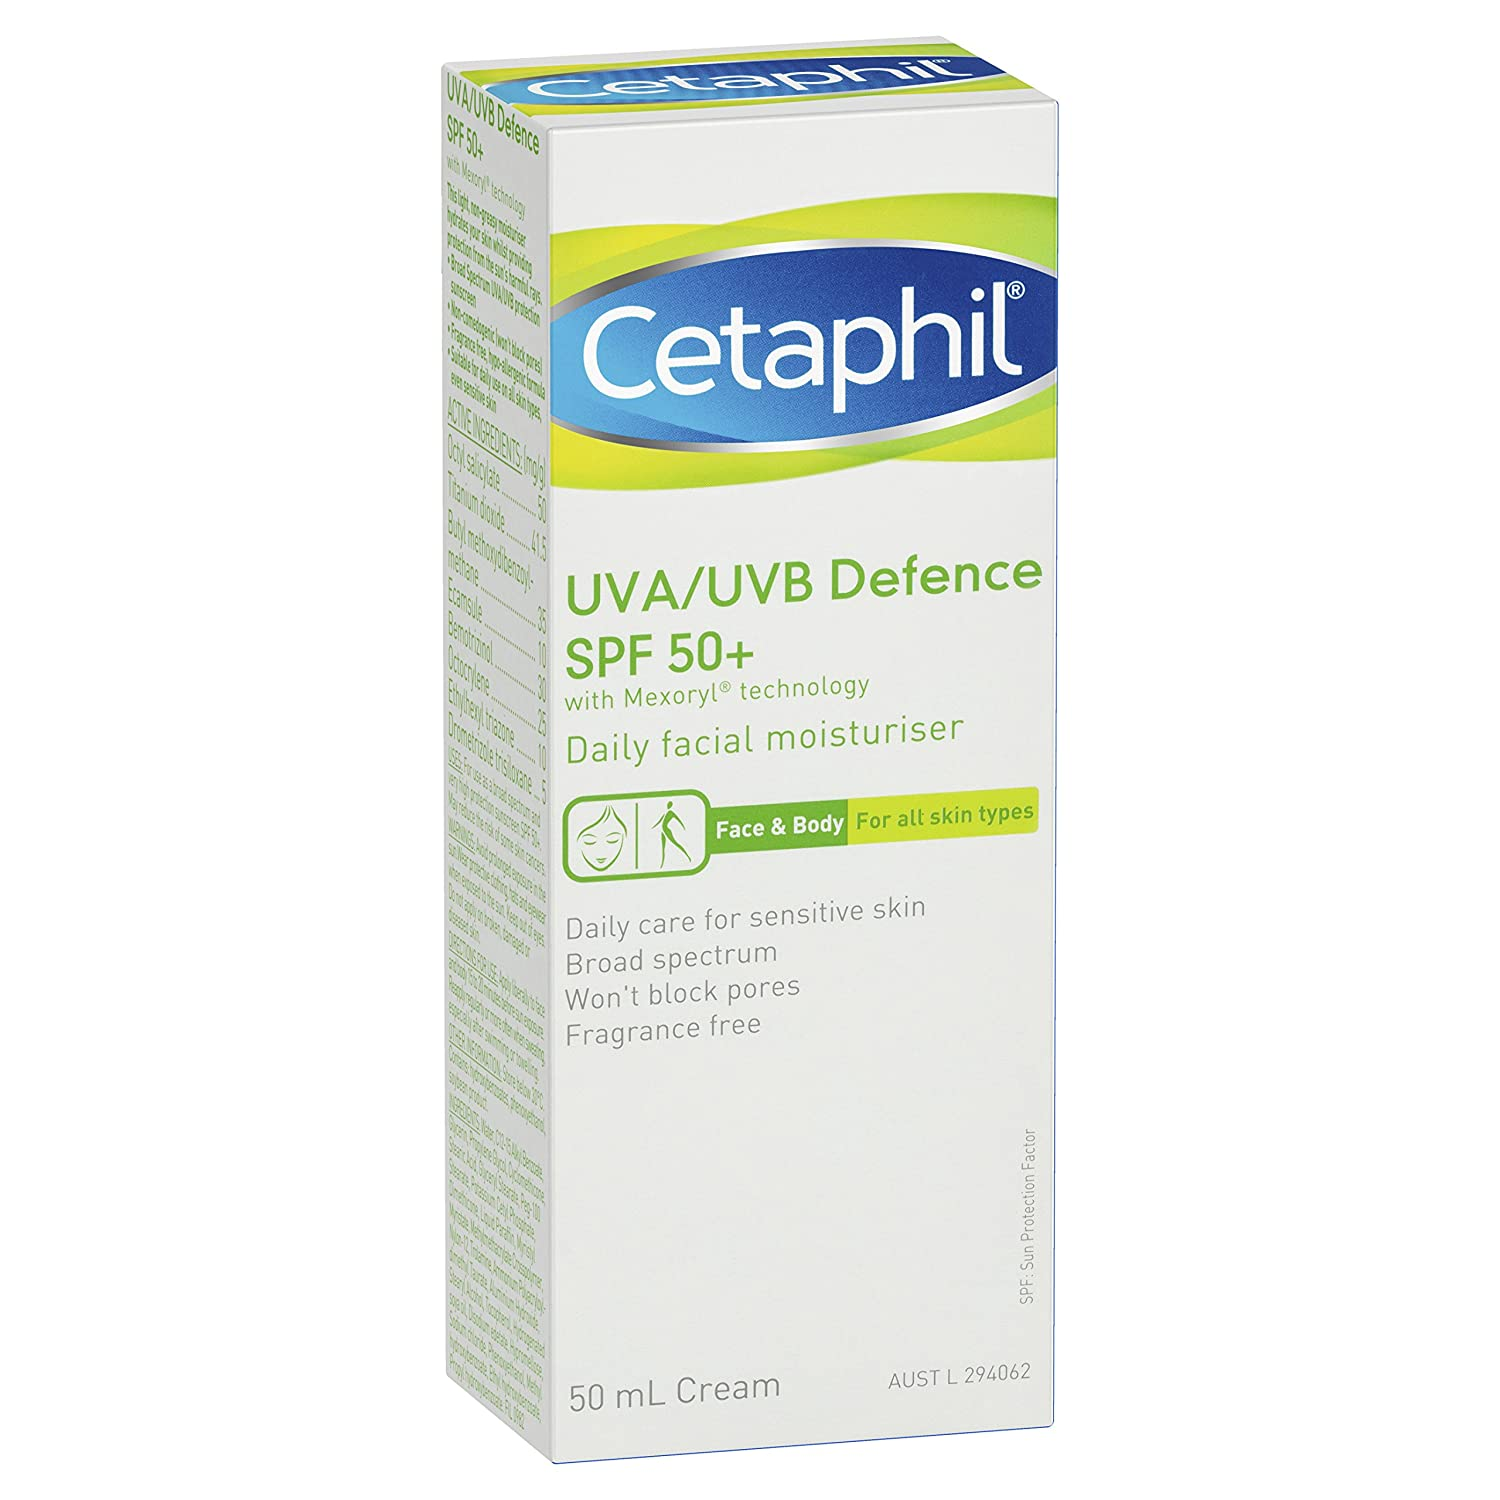 Cetaphil Uva Uvb Defense Spf50 50ml